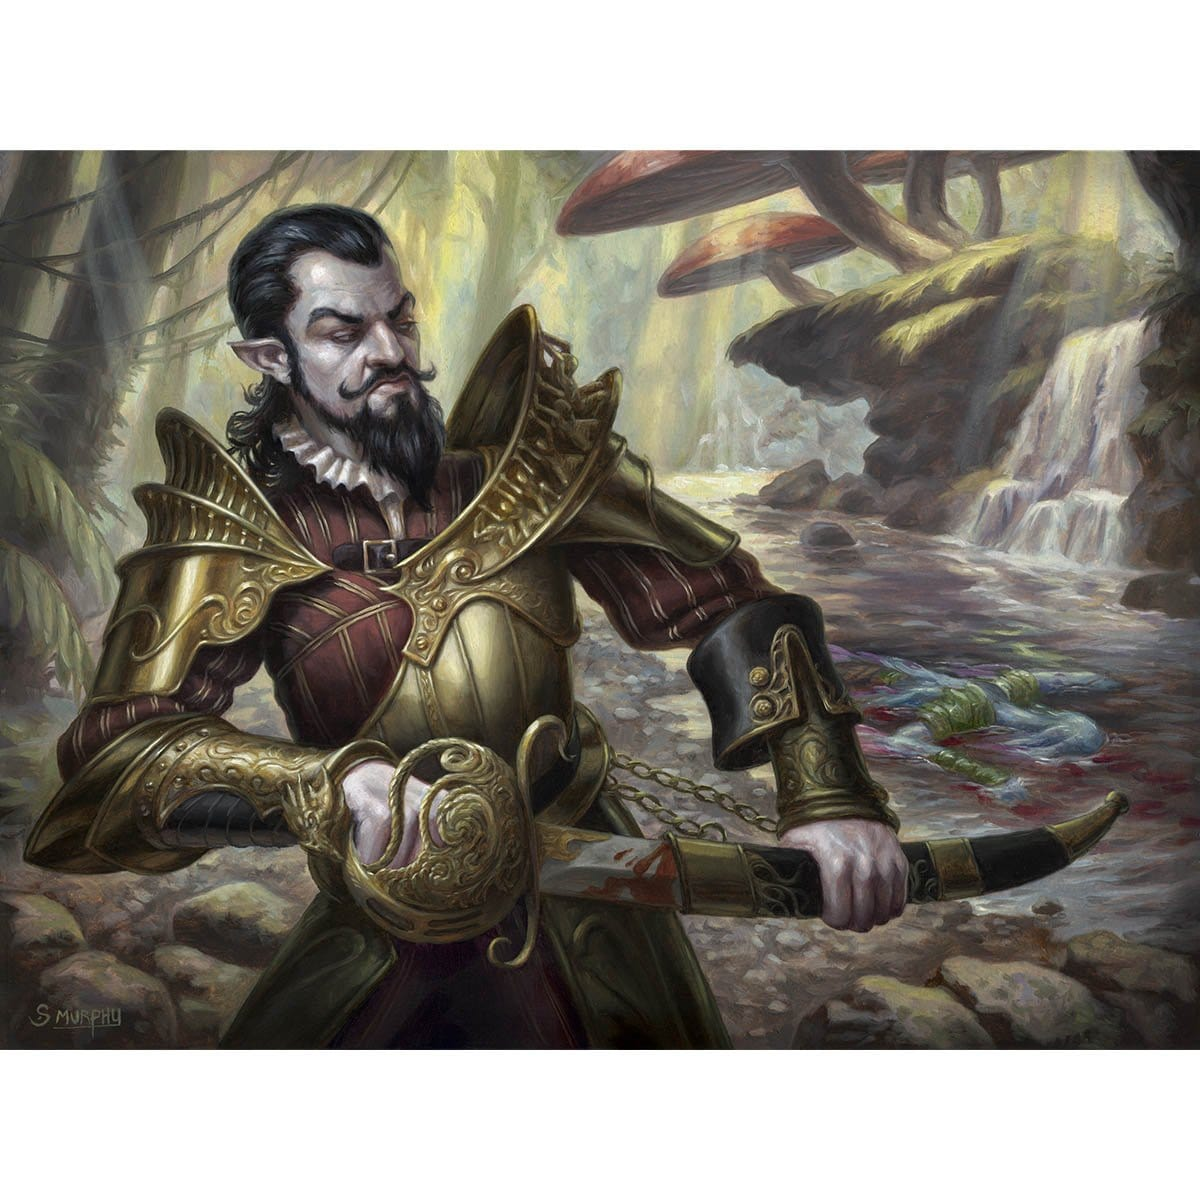 Bishop's Soldier Print - Print - Original Magic Art - Accessories for Magic the Gathering and other card games